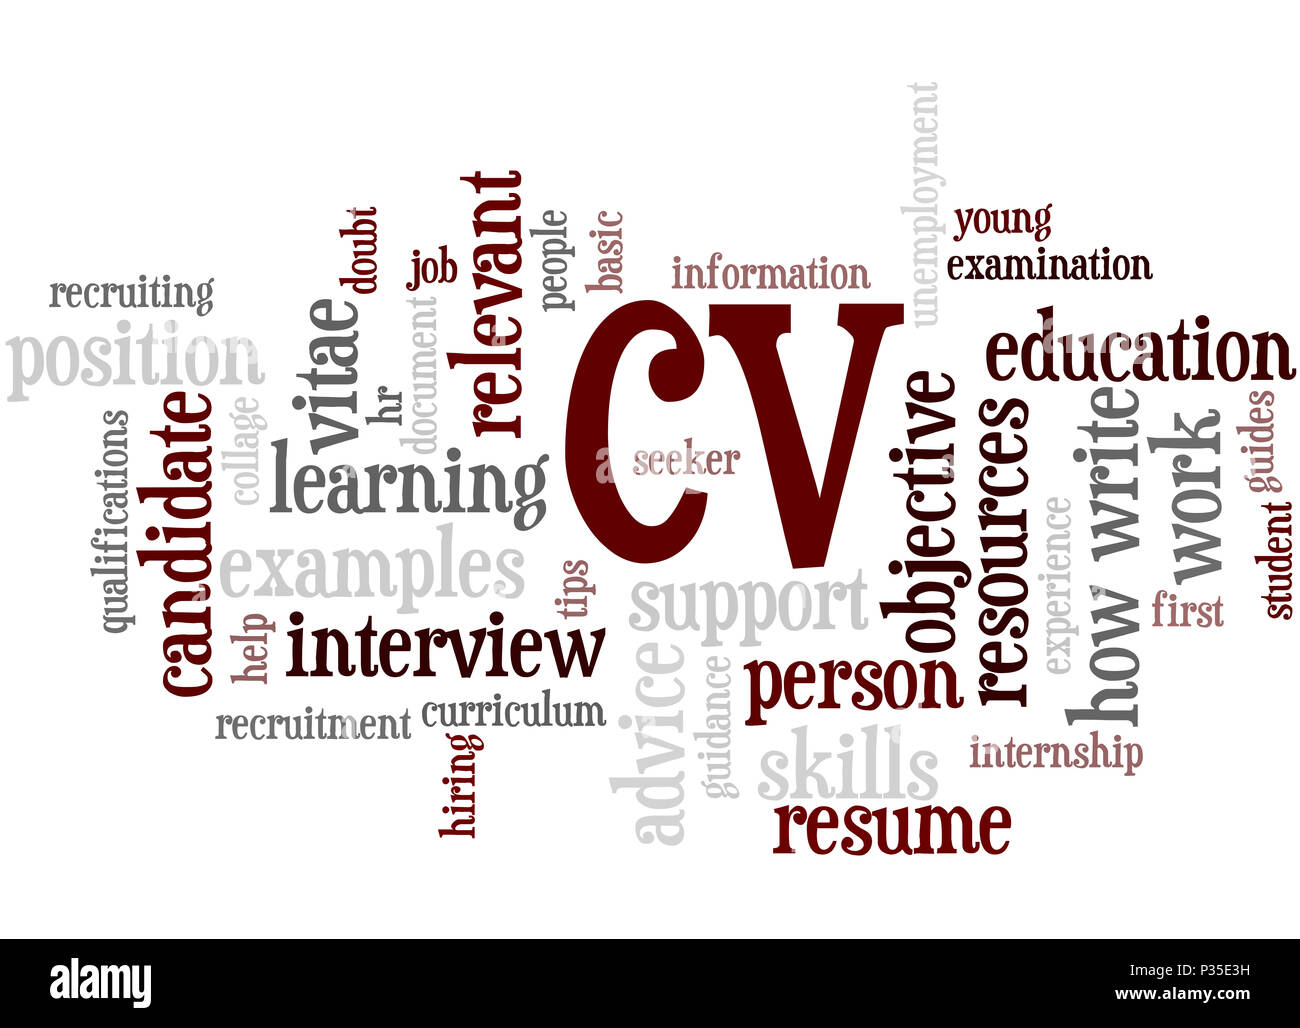 Cv Curriculum Vitae Word Cloud Concept On White Background Stock